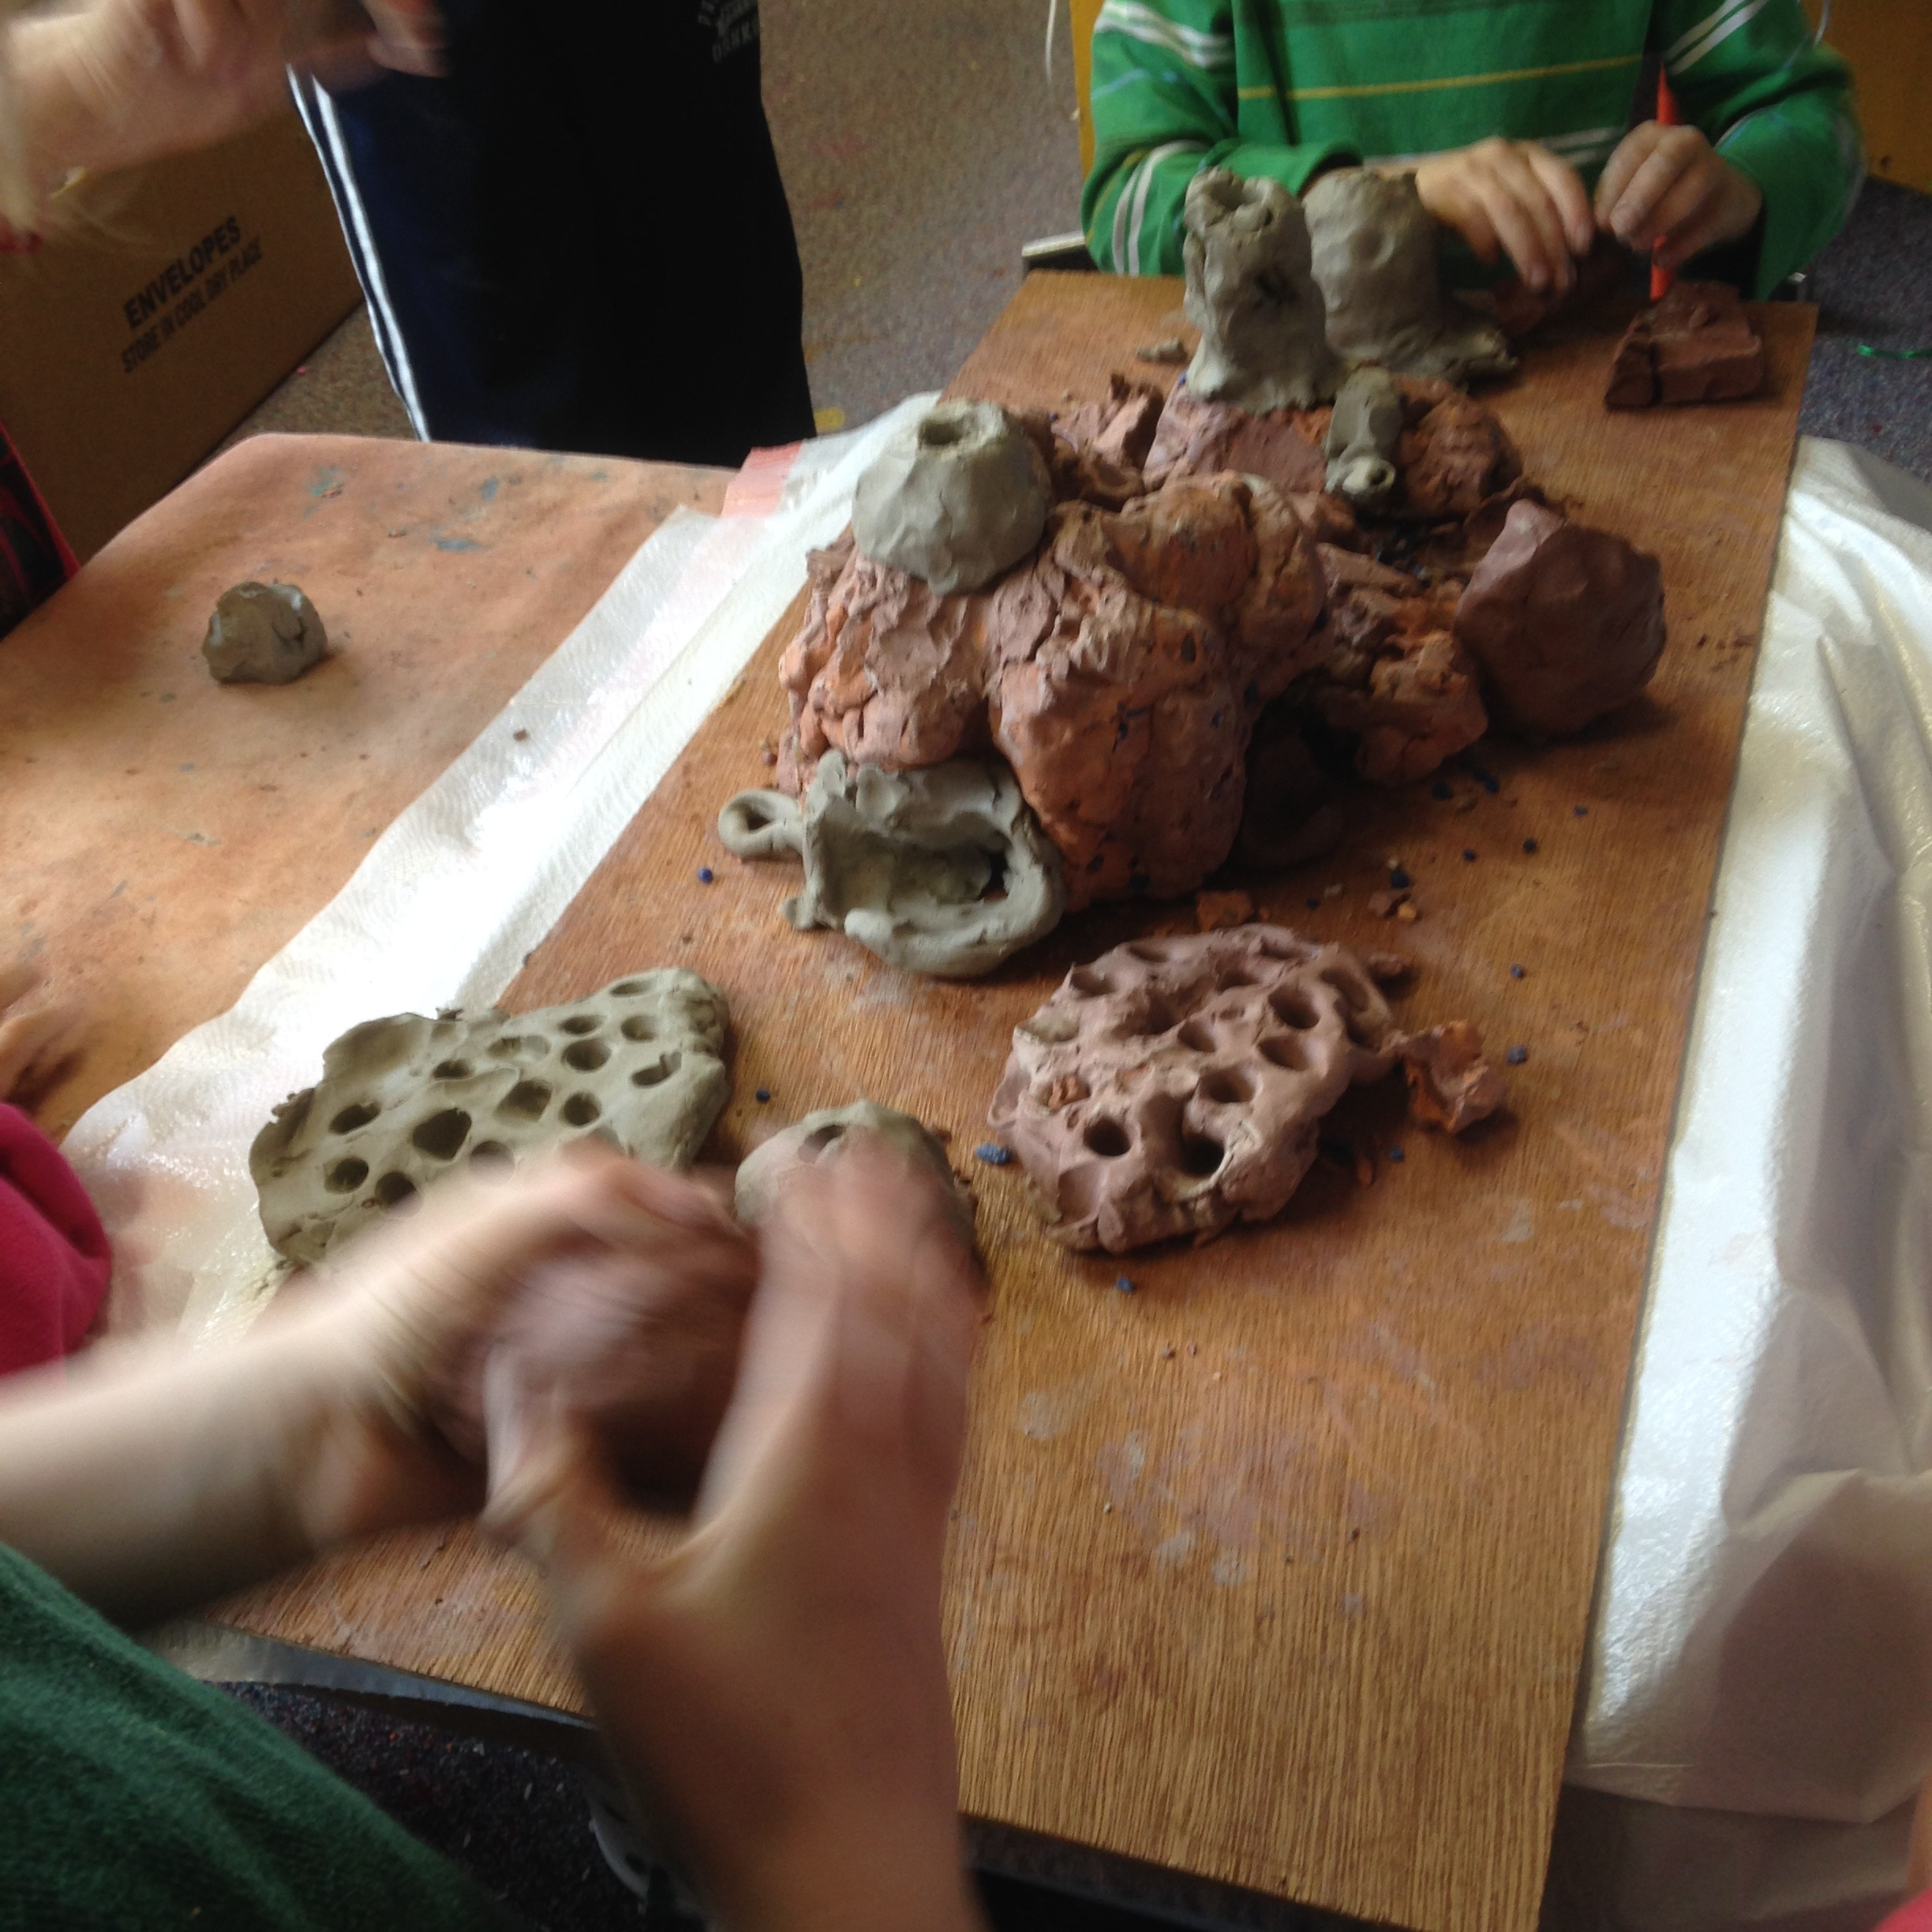 With different tools and even fingers, every child brought something special to the clay.